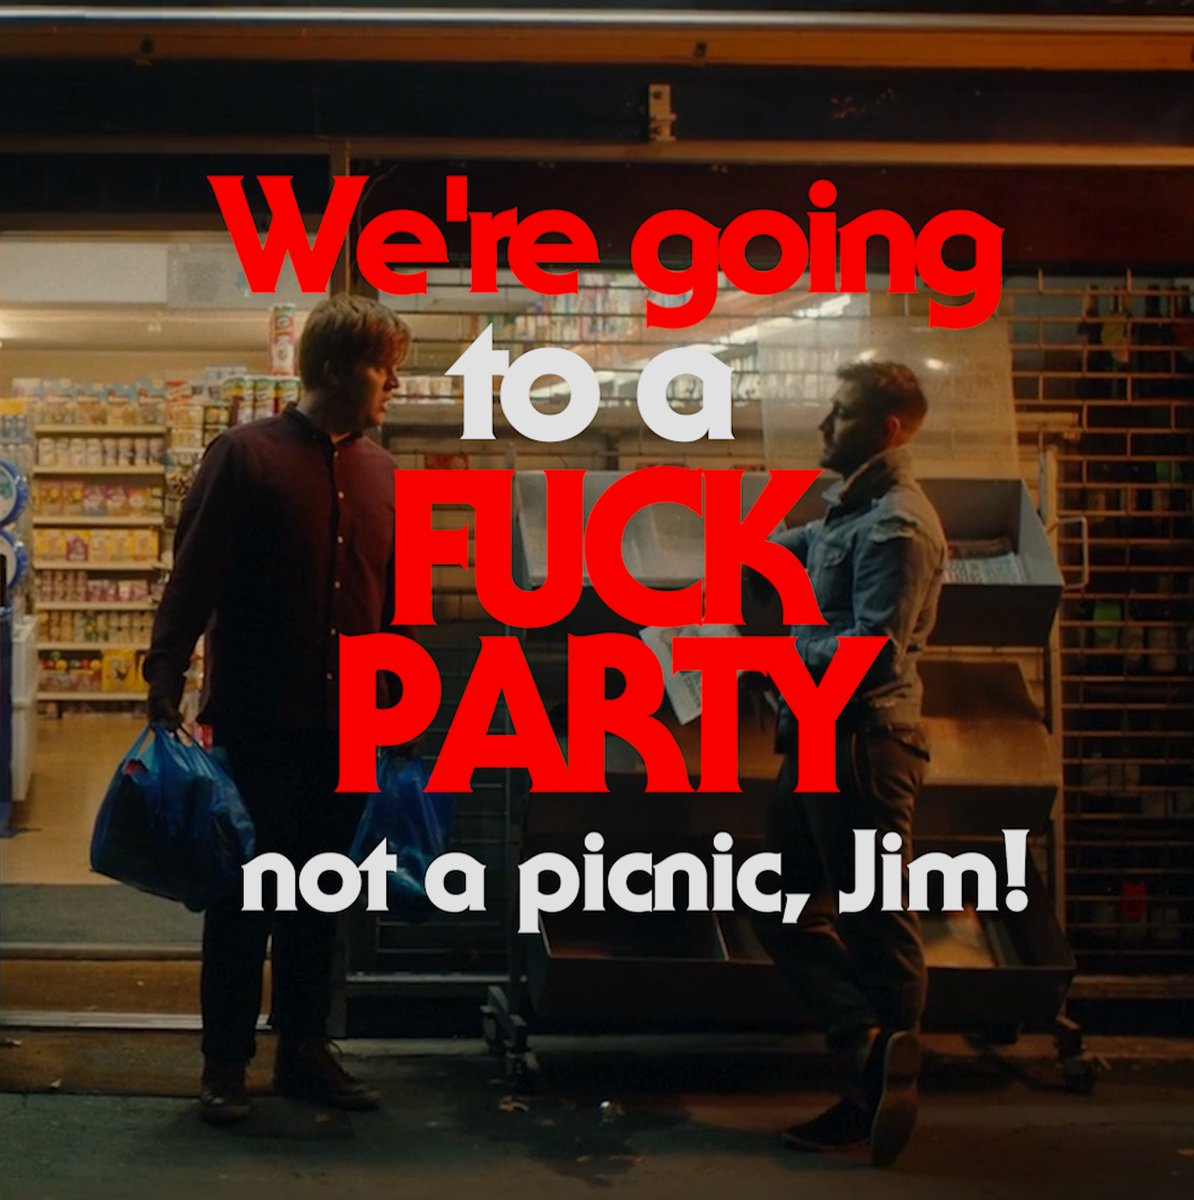 As our Alex would say...&quot;We&#39;re going to a F*** party not a picnic, Jim!&quot; #Film #Horror #Comedy #Movie #DoubleDate In cinema 13th October<br>http://pic.twitter.com/slhejbfhCF